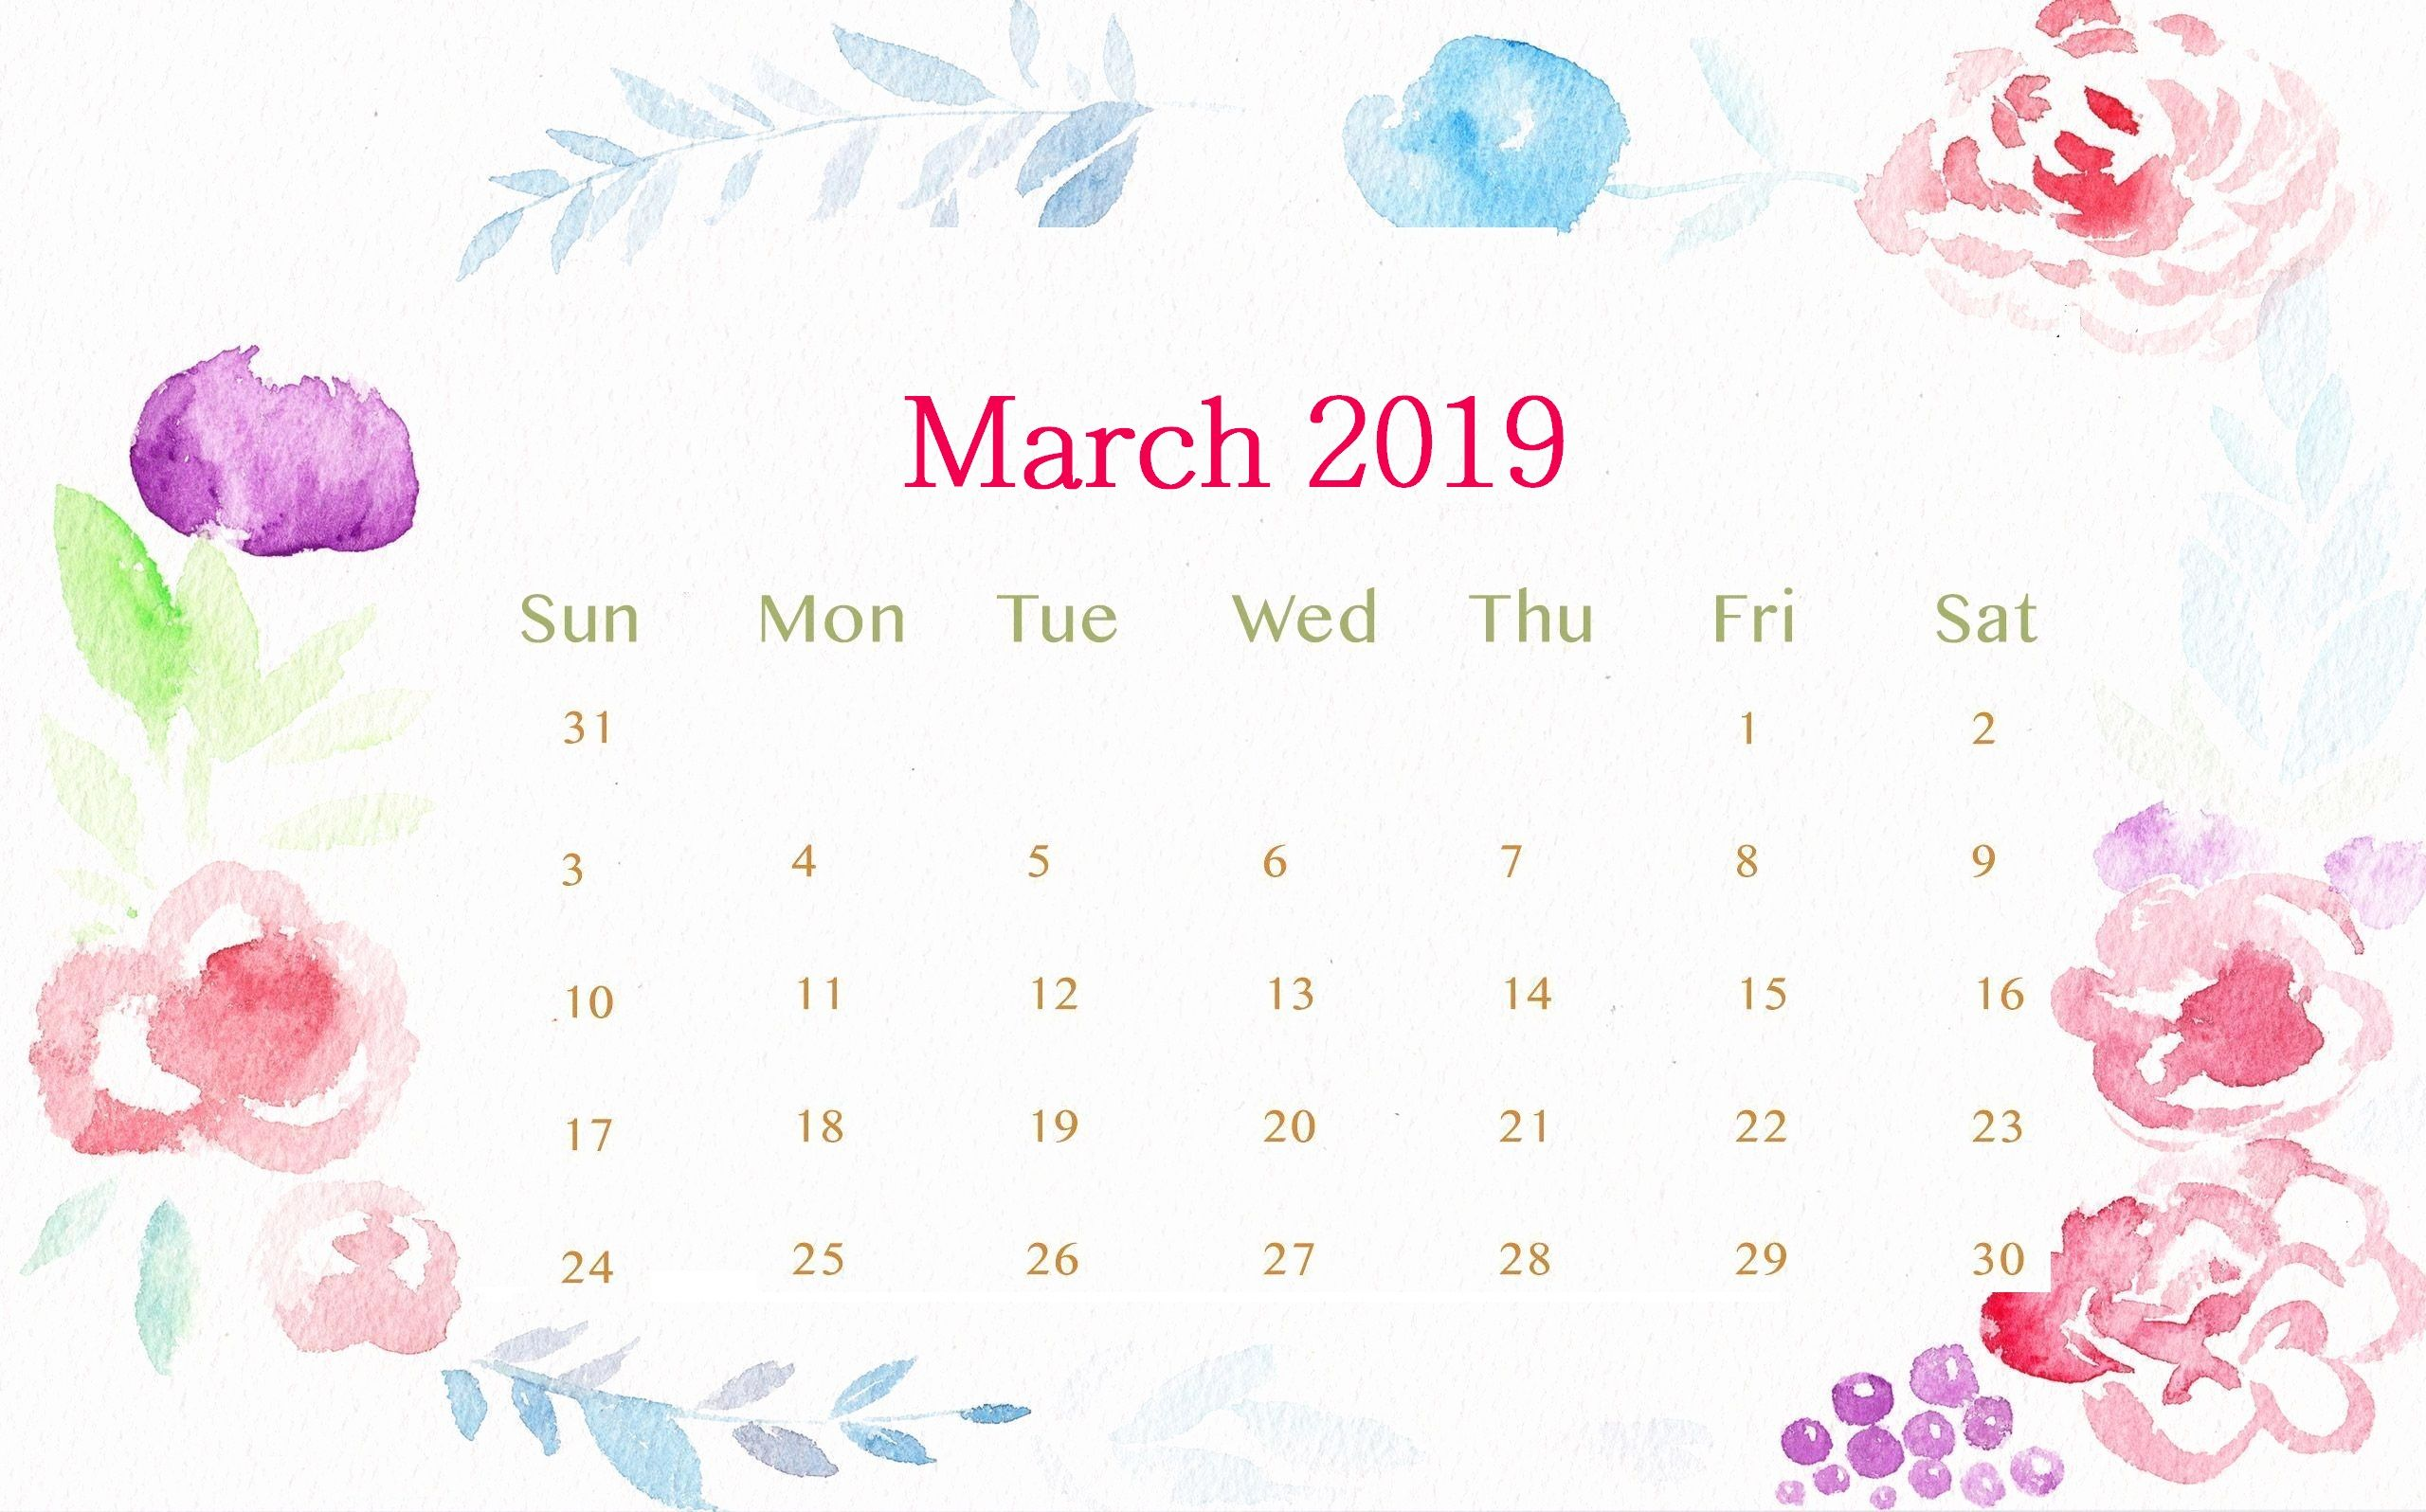 March 2019 Desktop Calendar Wallpaper Calendar 2018 Calendar